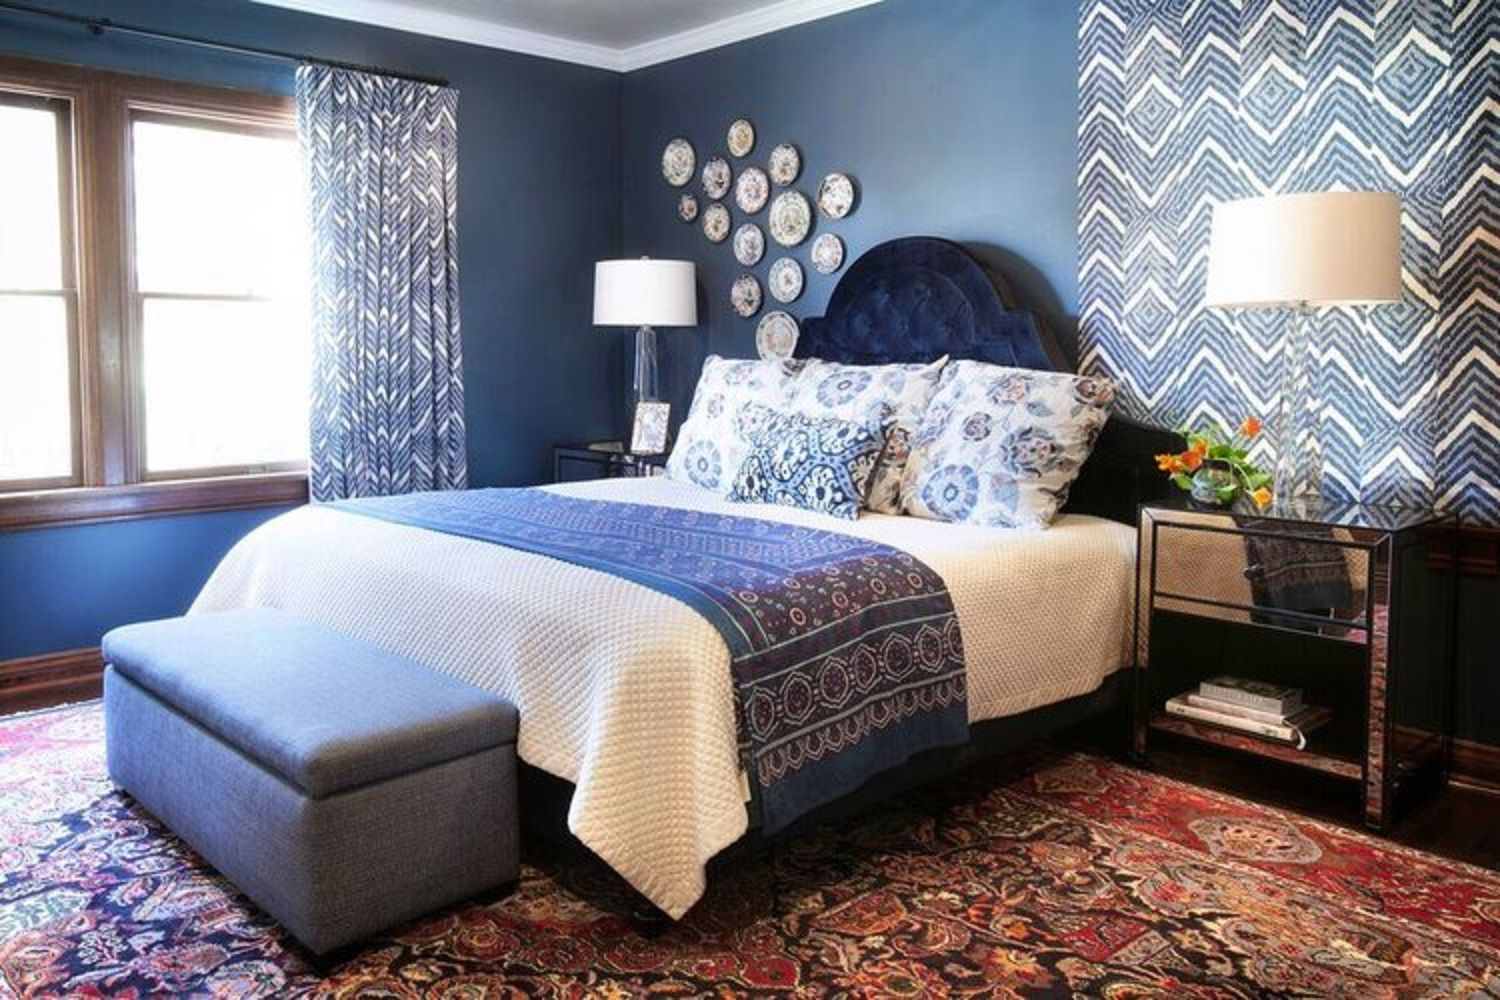 5 Professional Interior Decorator Tips for a Bedroom Makeover